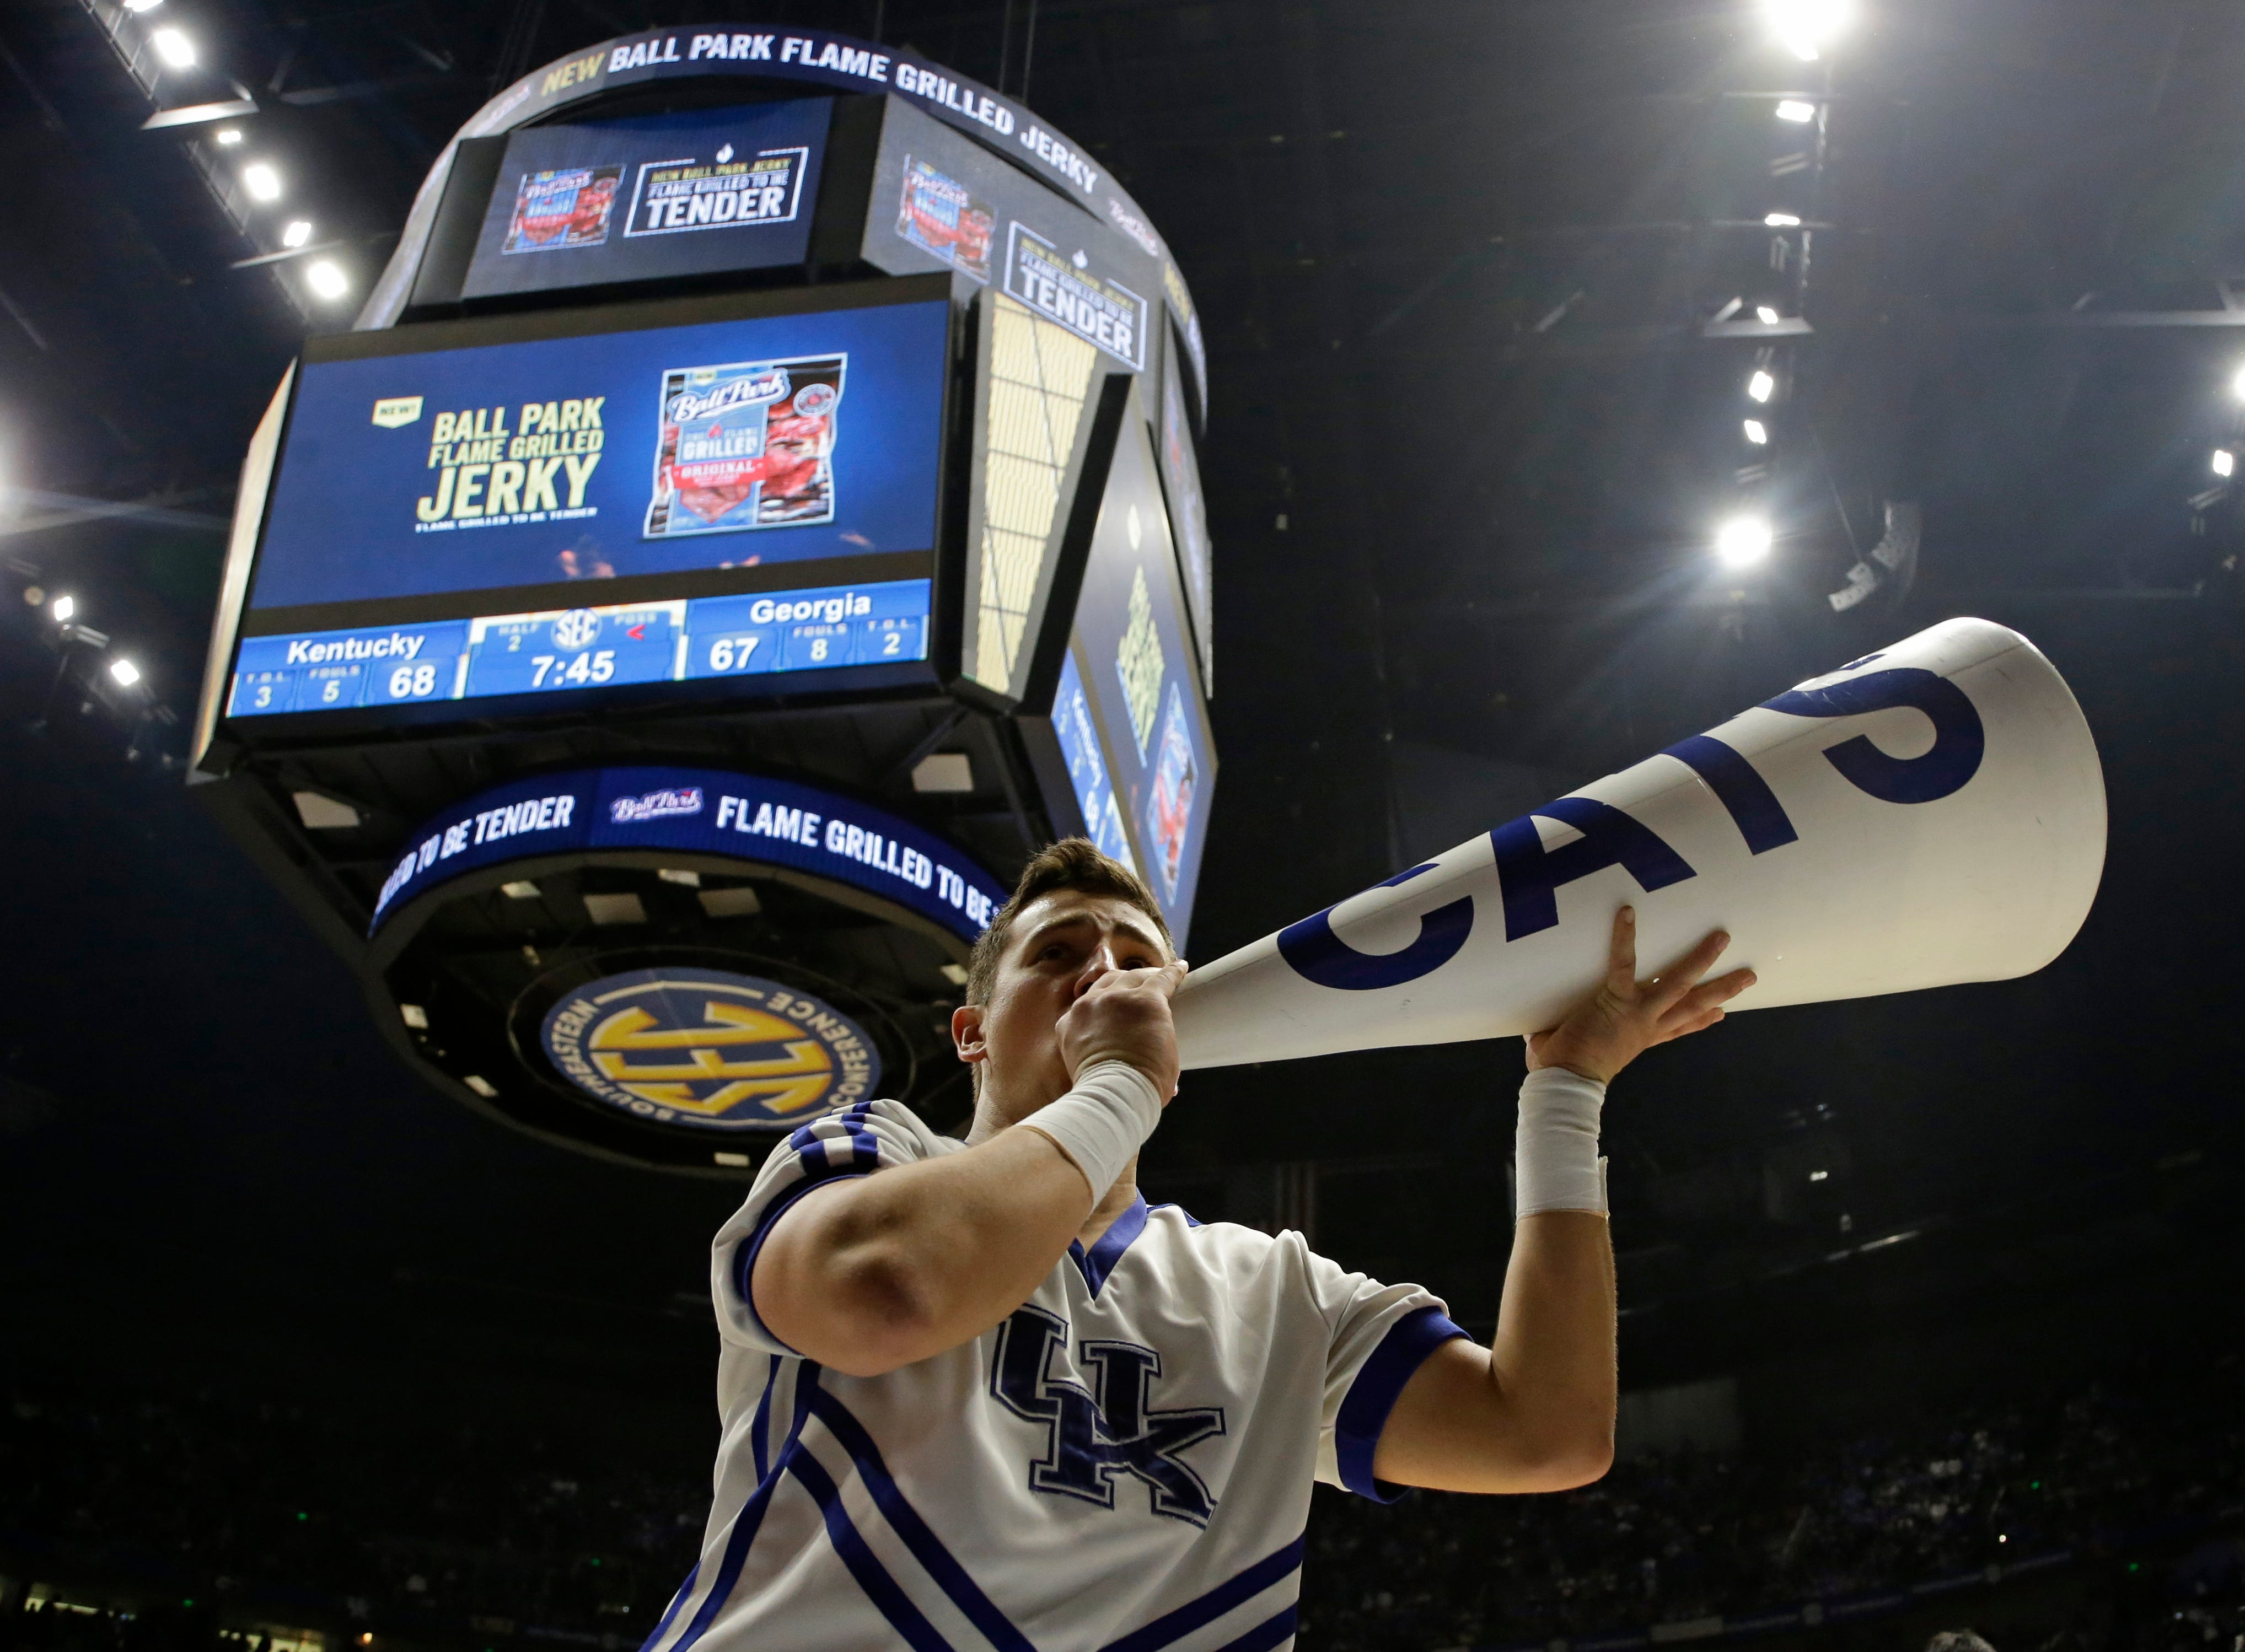 A Kentucky cheerleader performs during the second half of an NCAA college basketball game against Georgia in the Southeastern Conference tournament in Nashville, Tenn., Saturday, March 12, 2016. (AP Photo/Mark Humphrey)